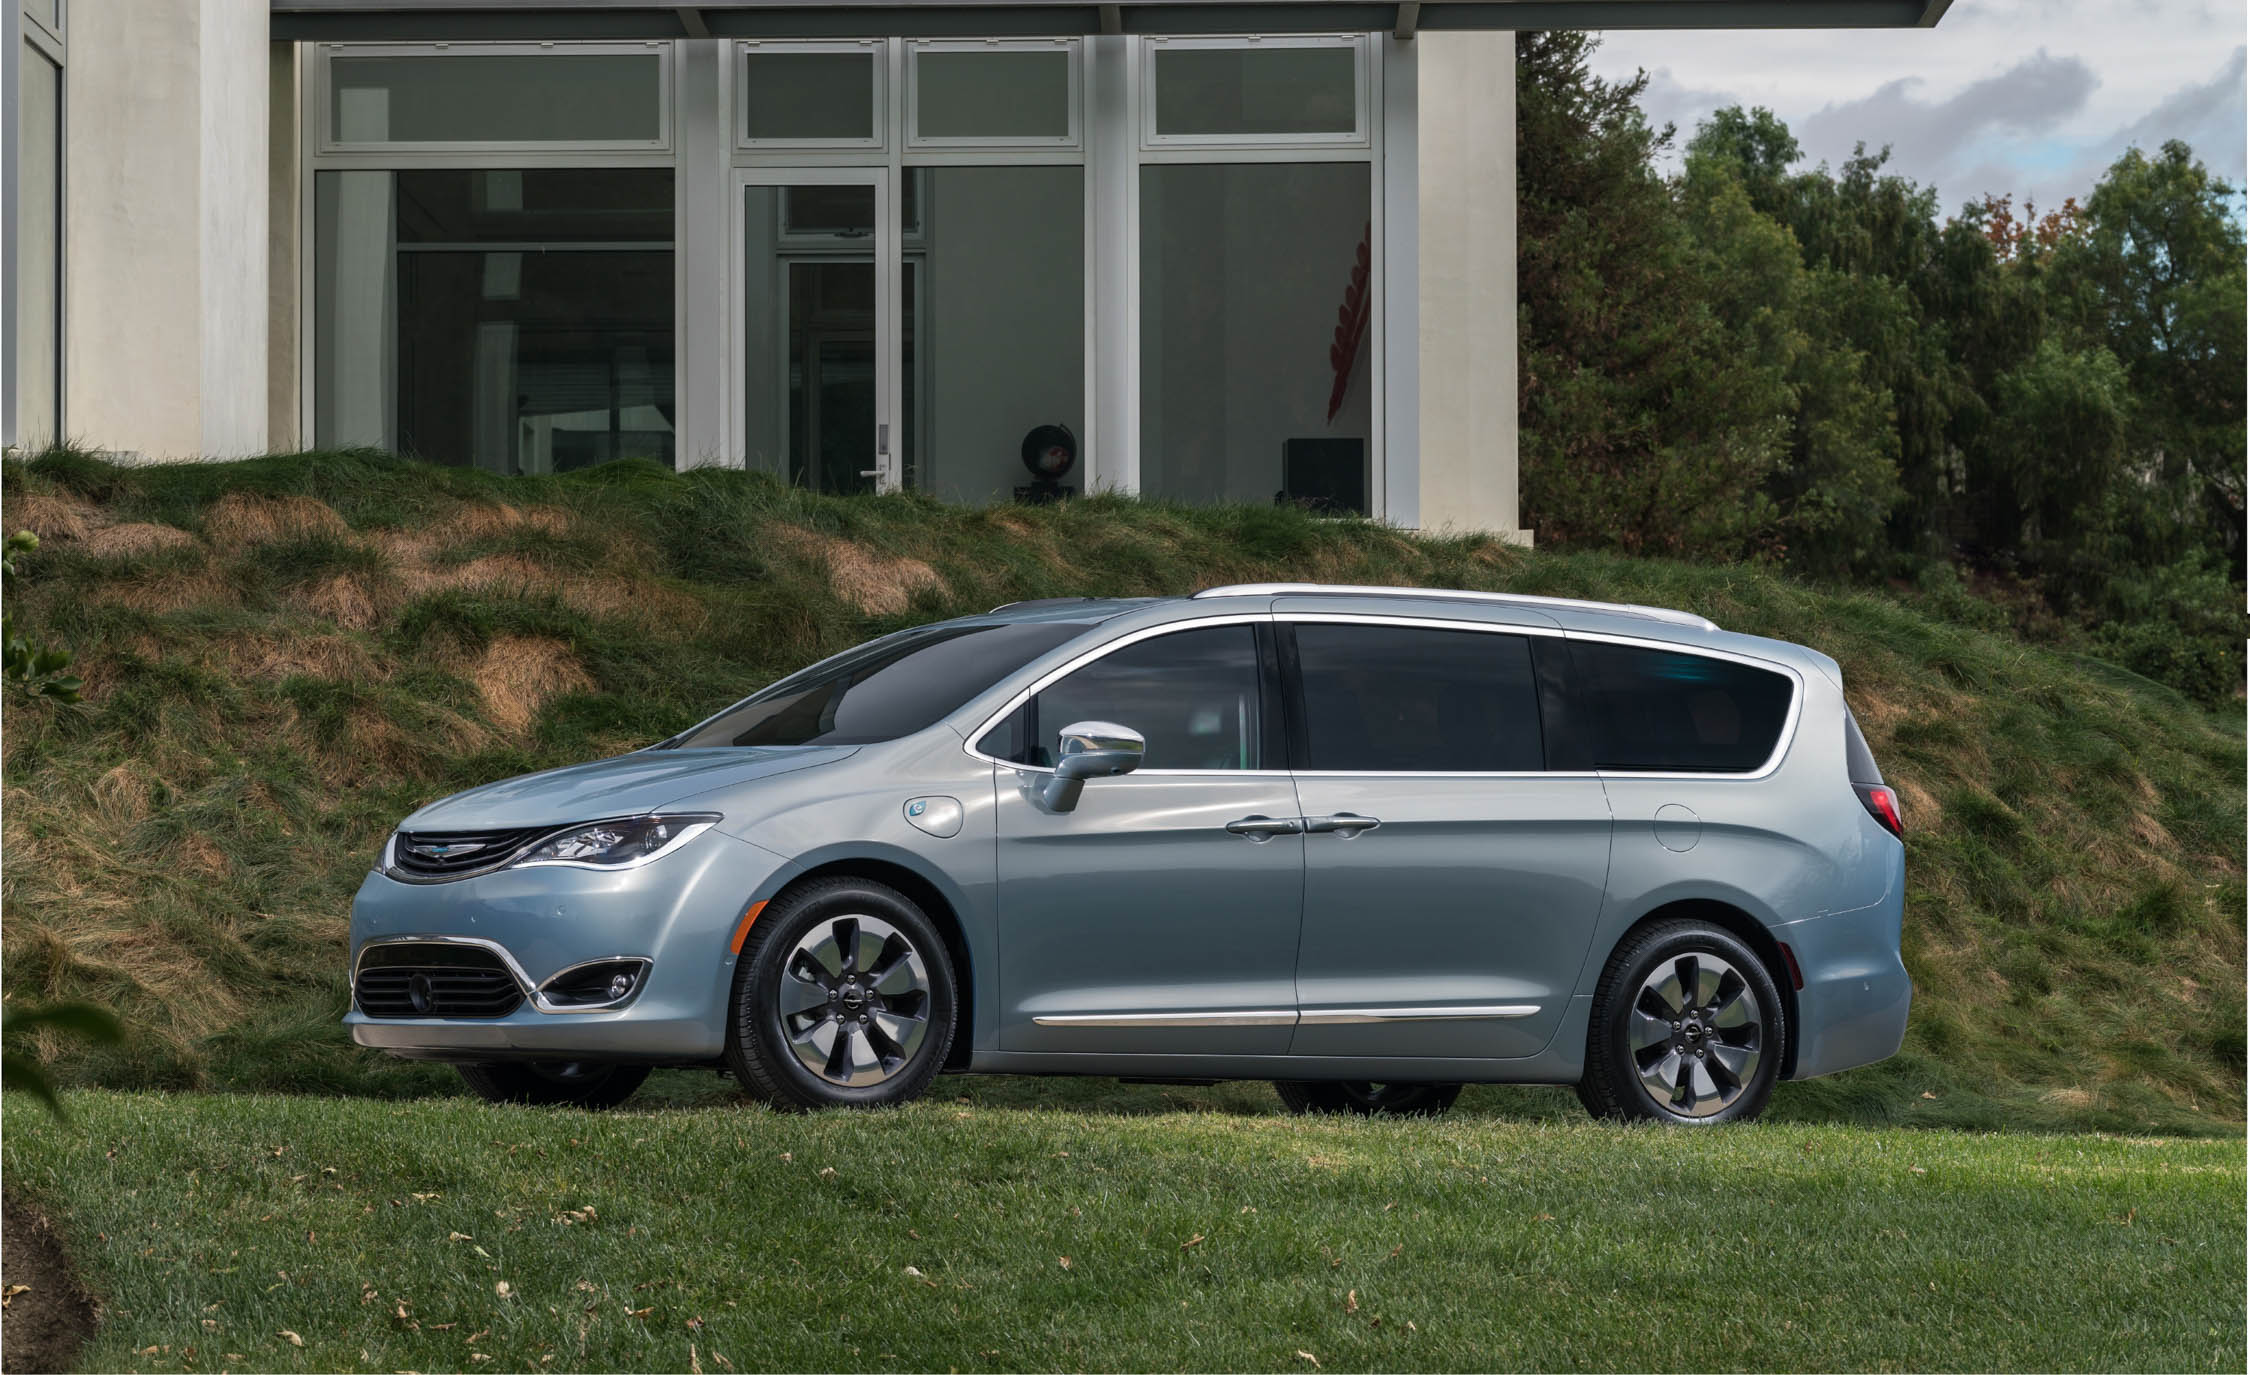 2017 Chrysler Pacifica Hybrid (Photo 4 of 10)